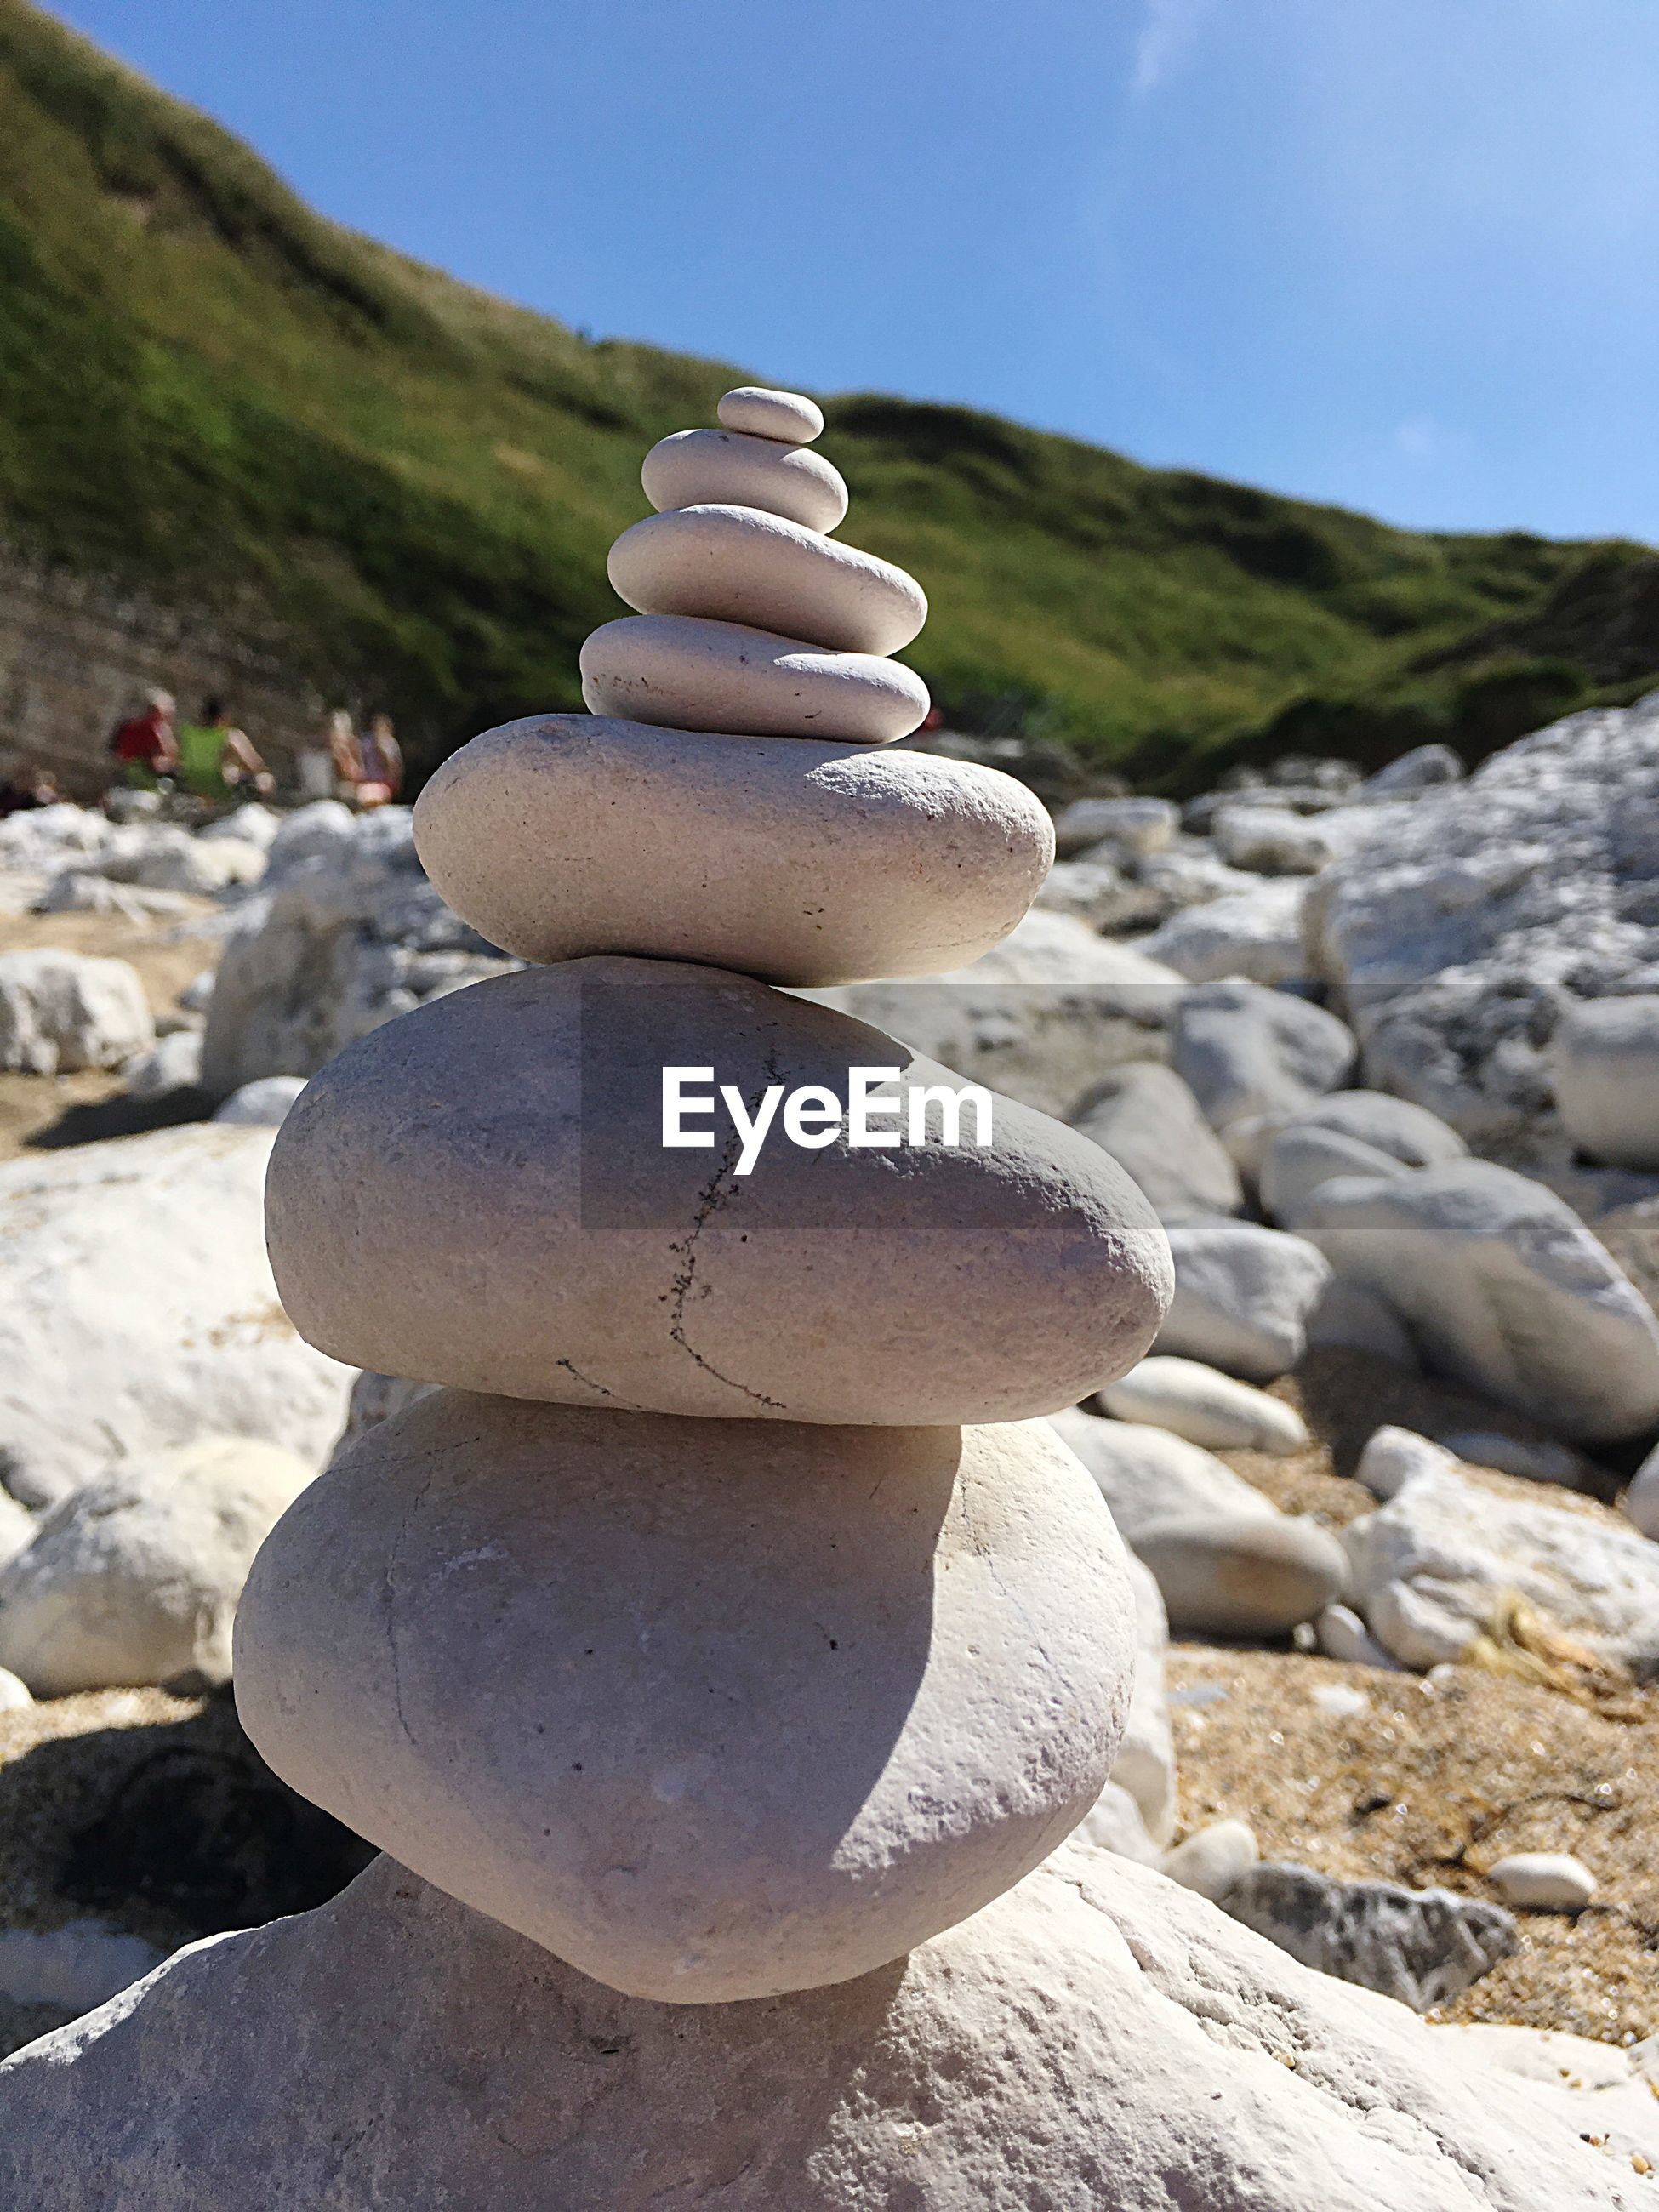 STACK OF PEBBLES ON MOUNTAIN